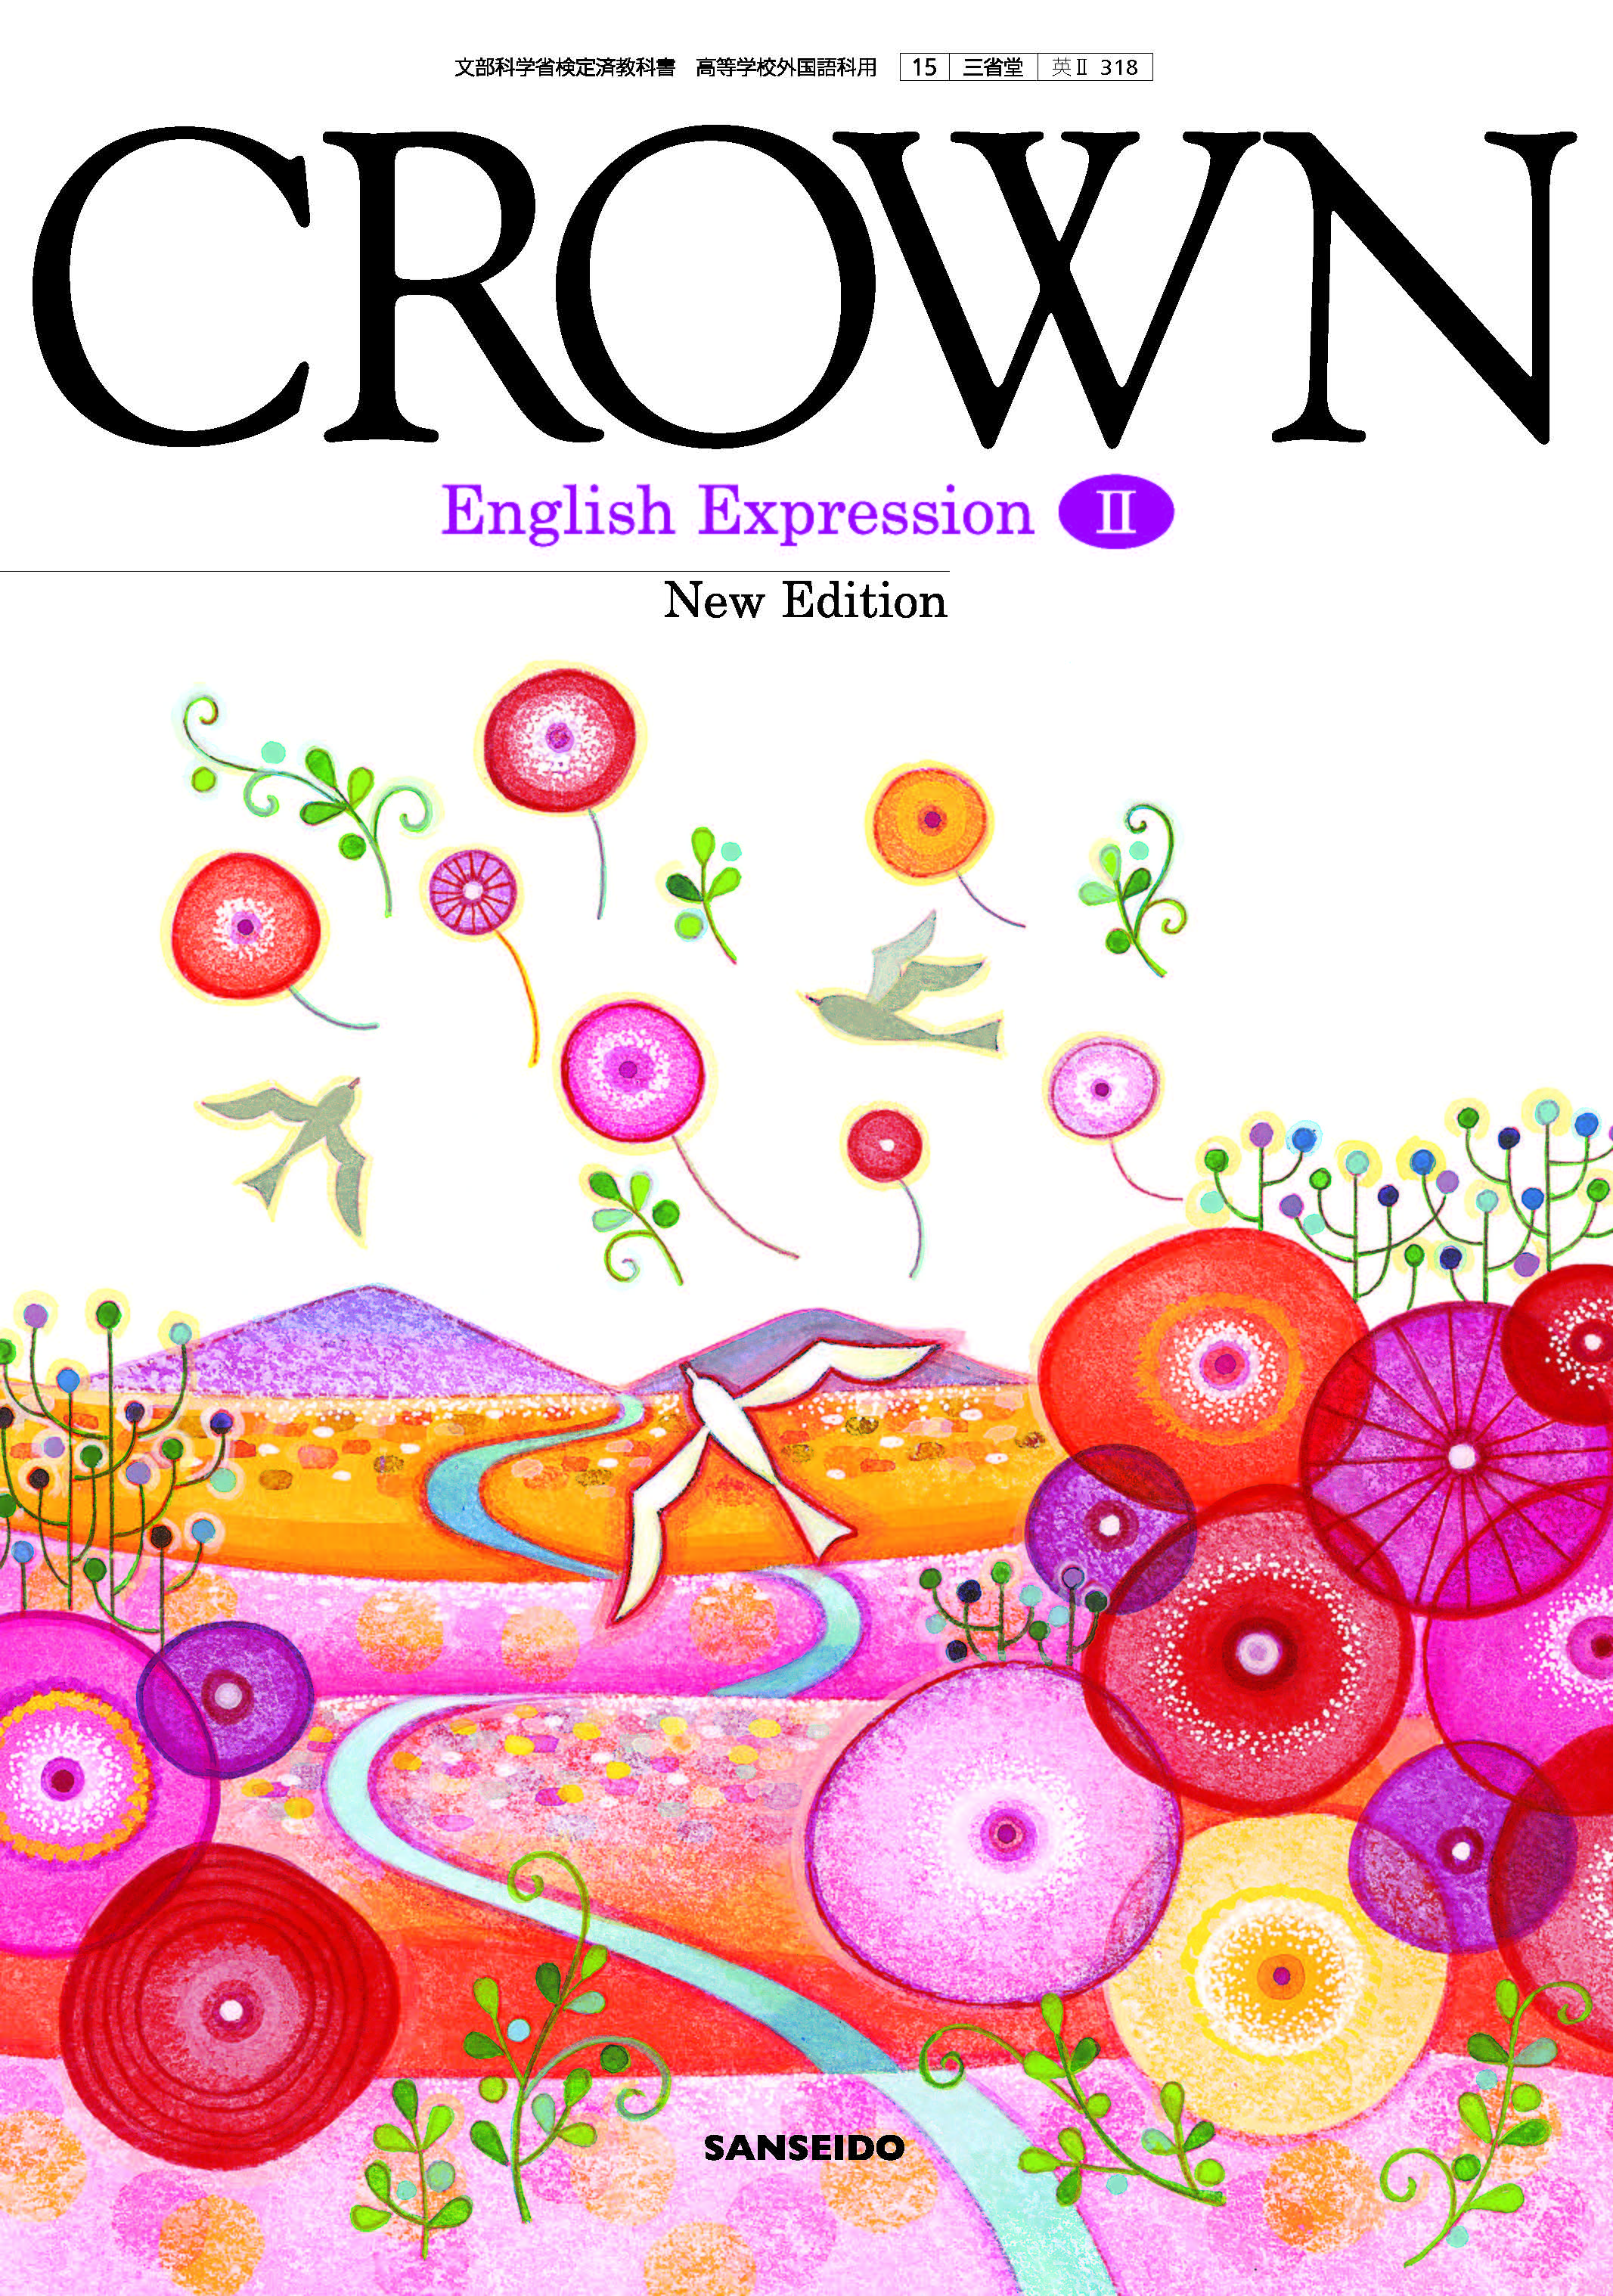 CROWN English Expression I New Edition